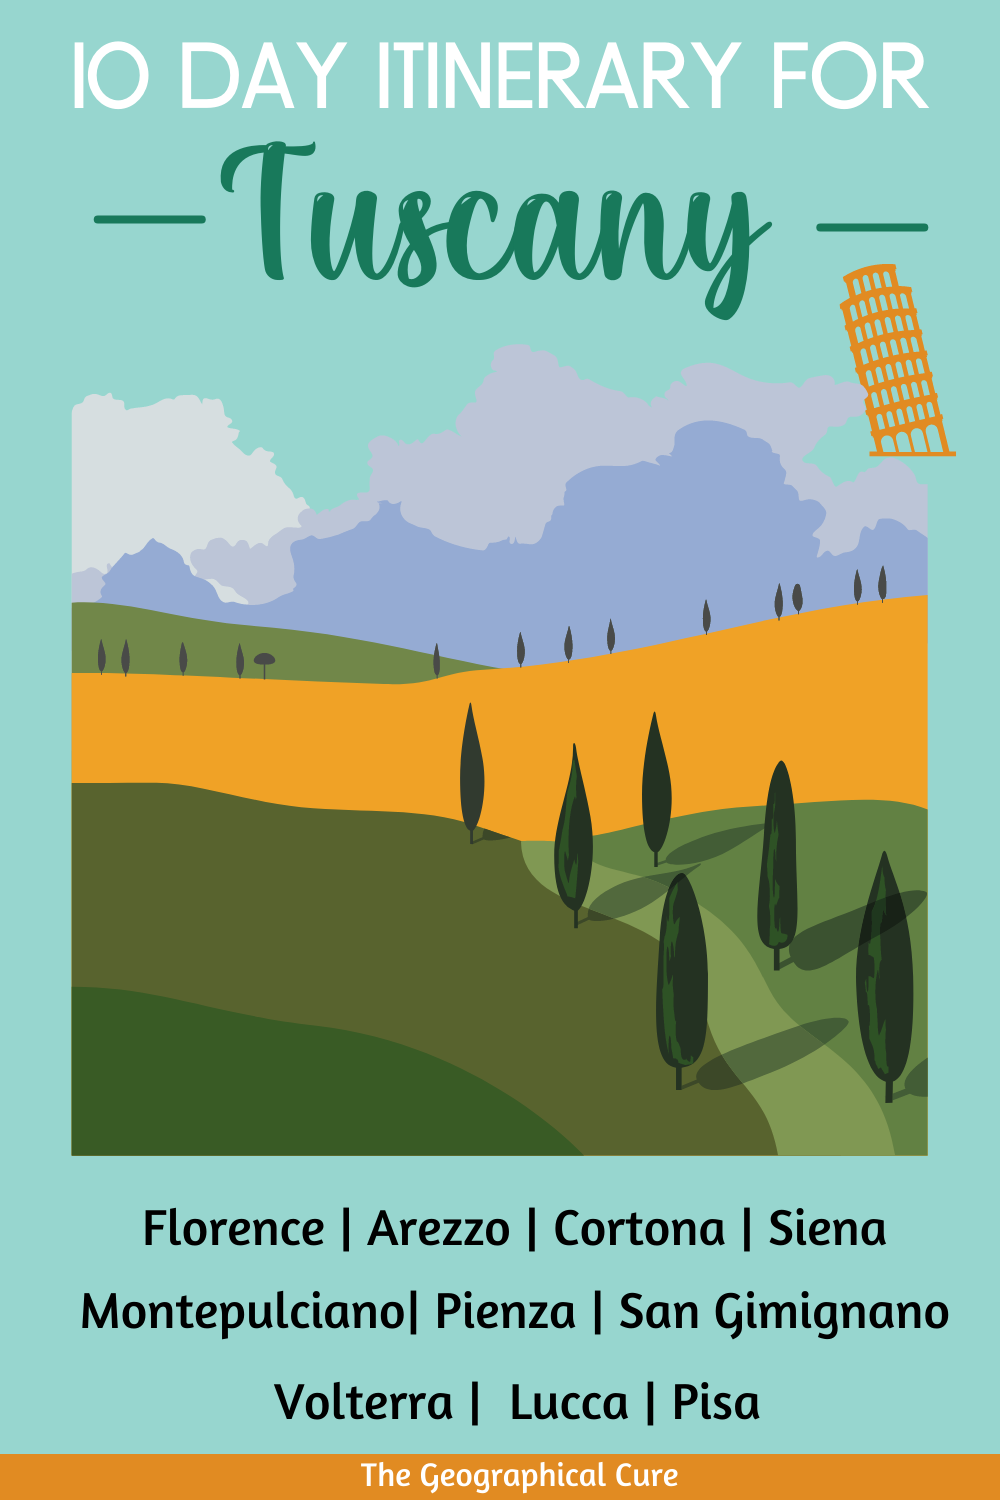 10 Day Itinerary for Tuscany